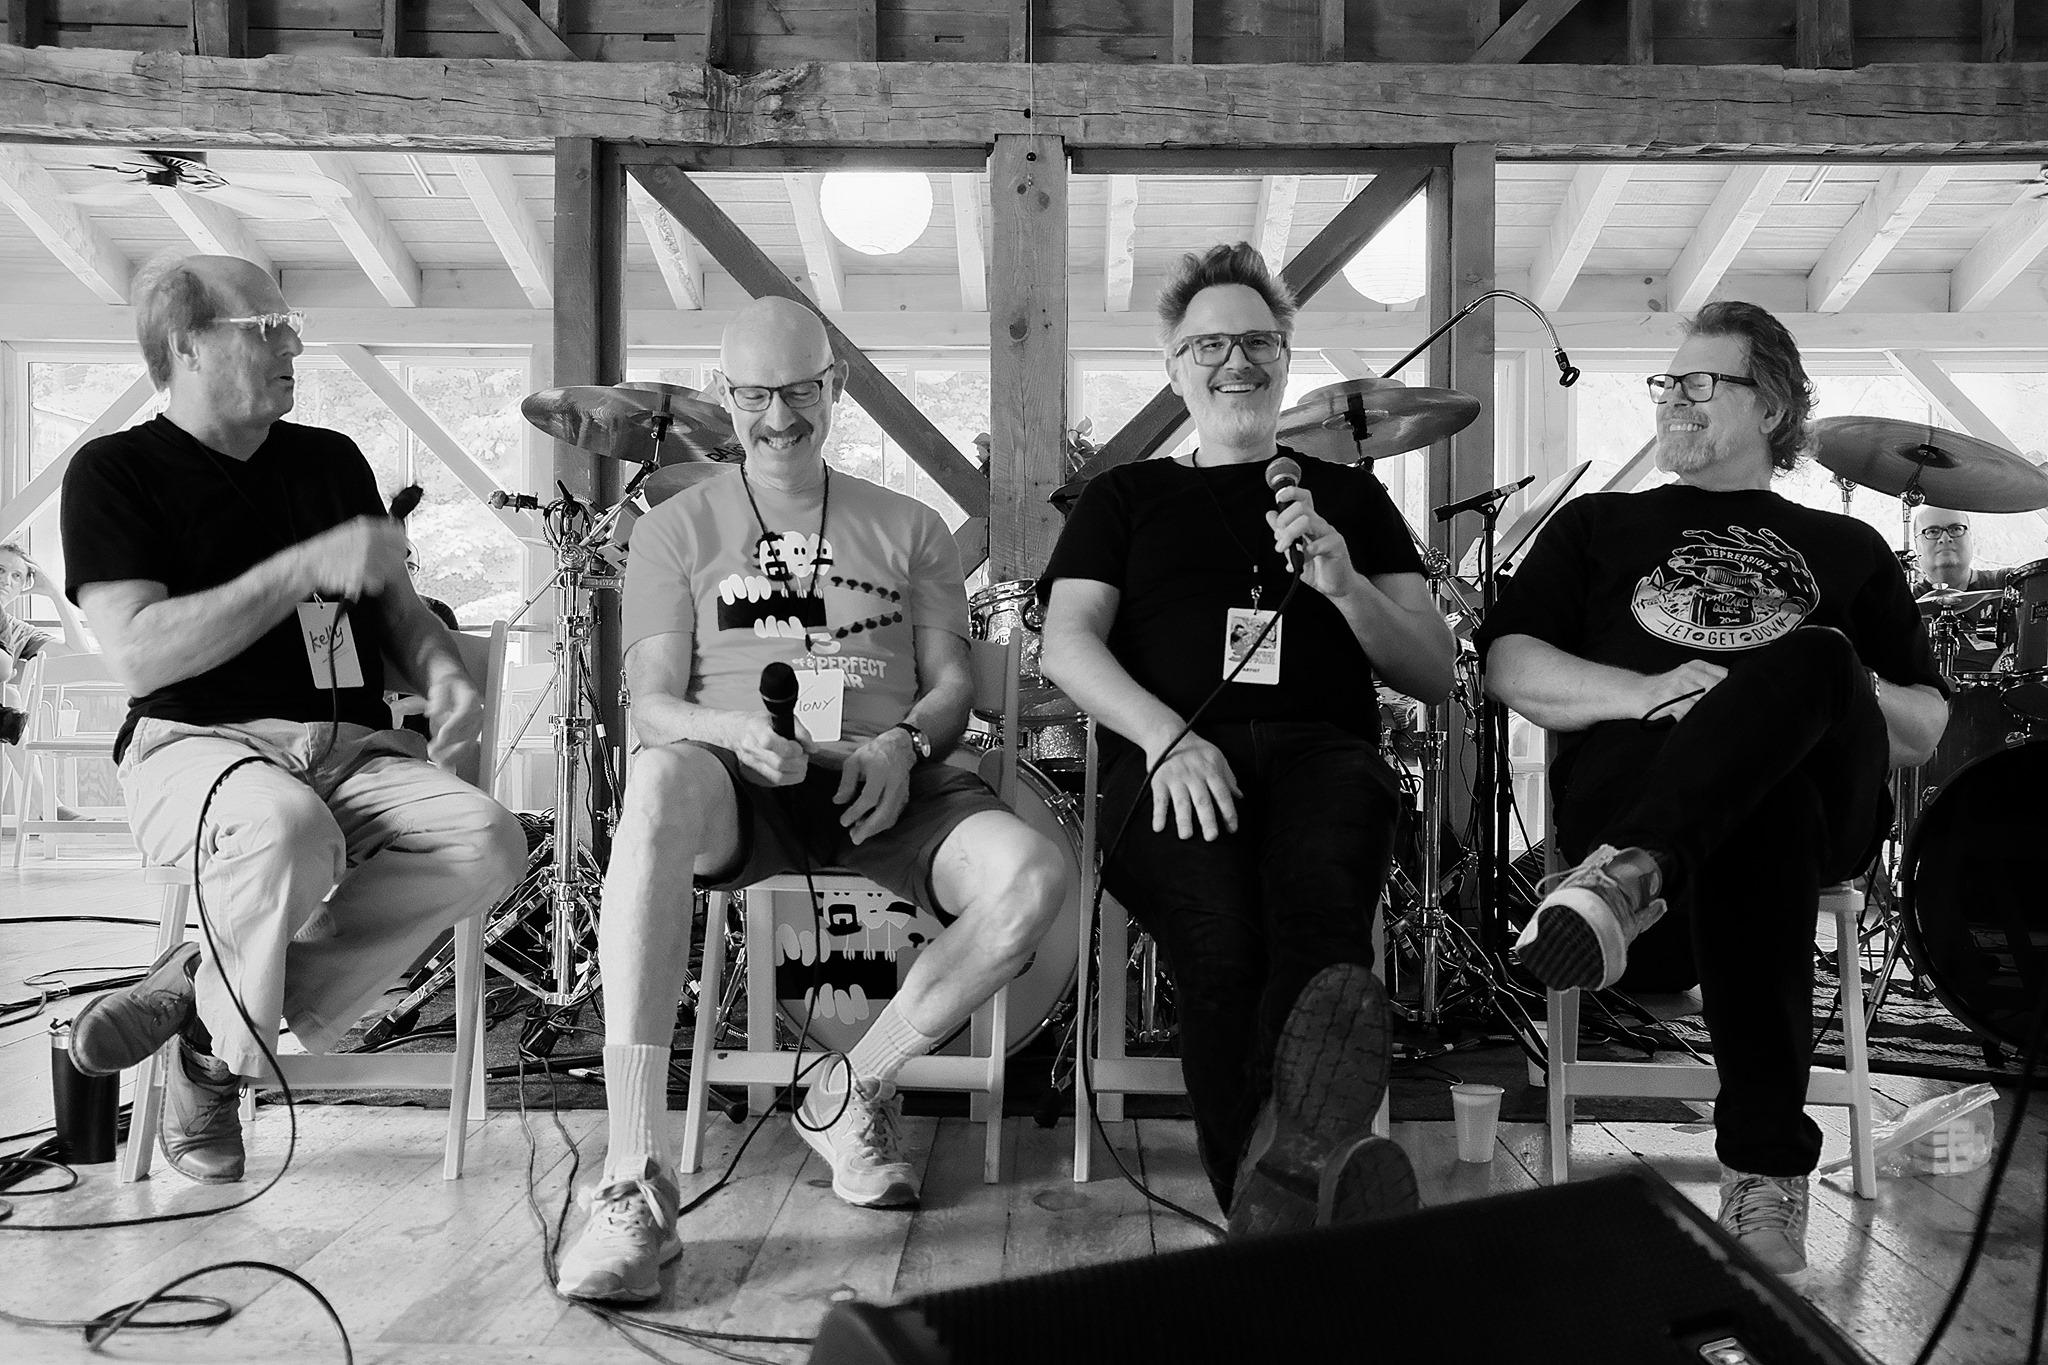 (Left to right) Adrian Belew, Tony Levin, Markus Reuter, and Pat Mastellotto telling stories at the beginning of camp.